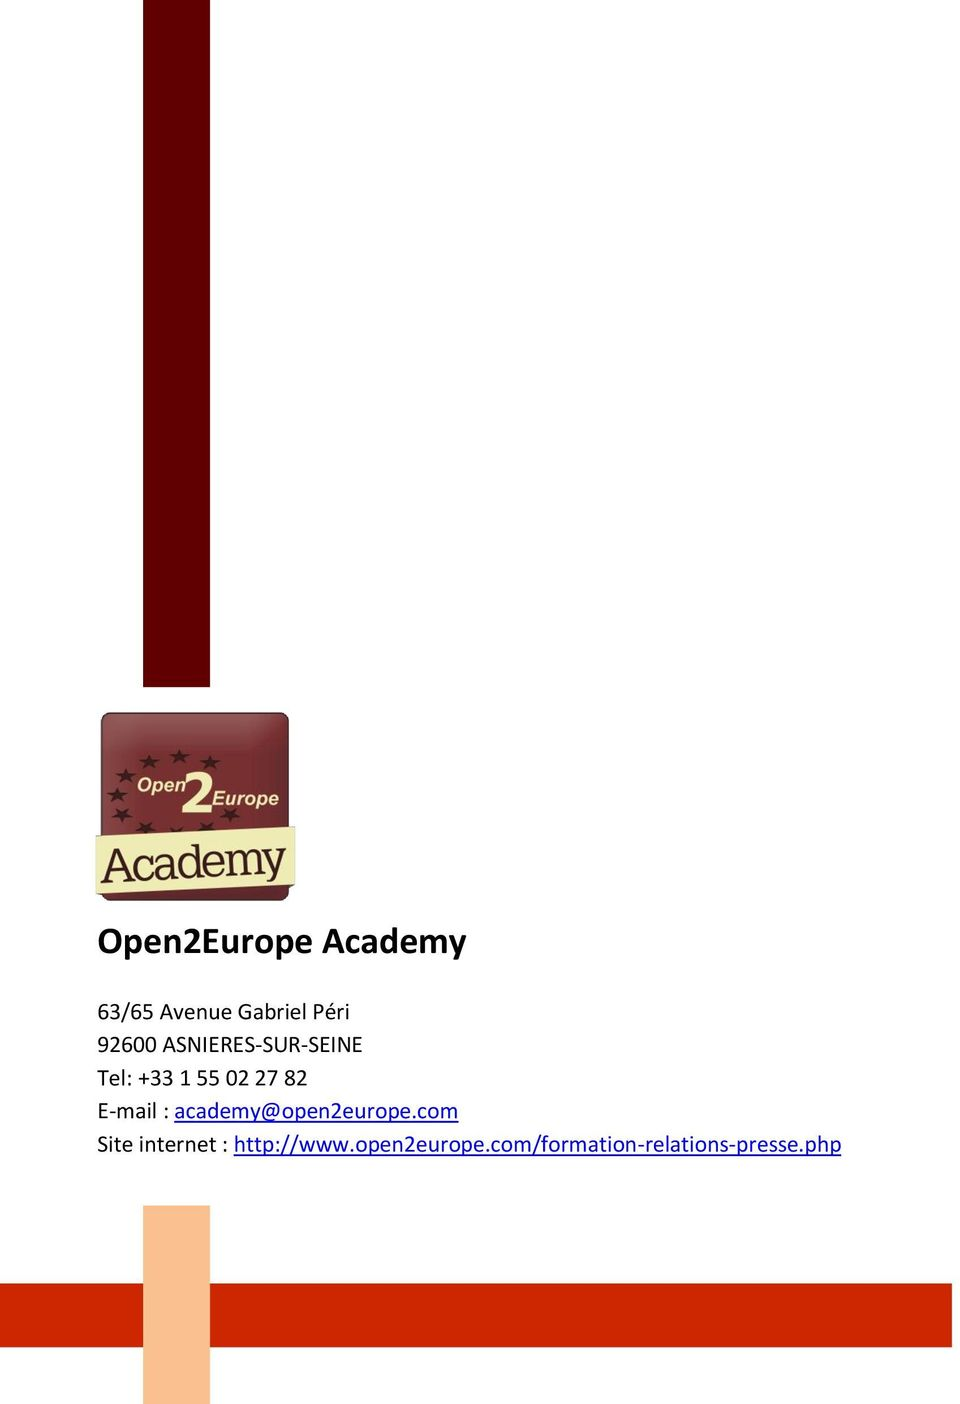 E-mail : academy@open2europe.